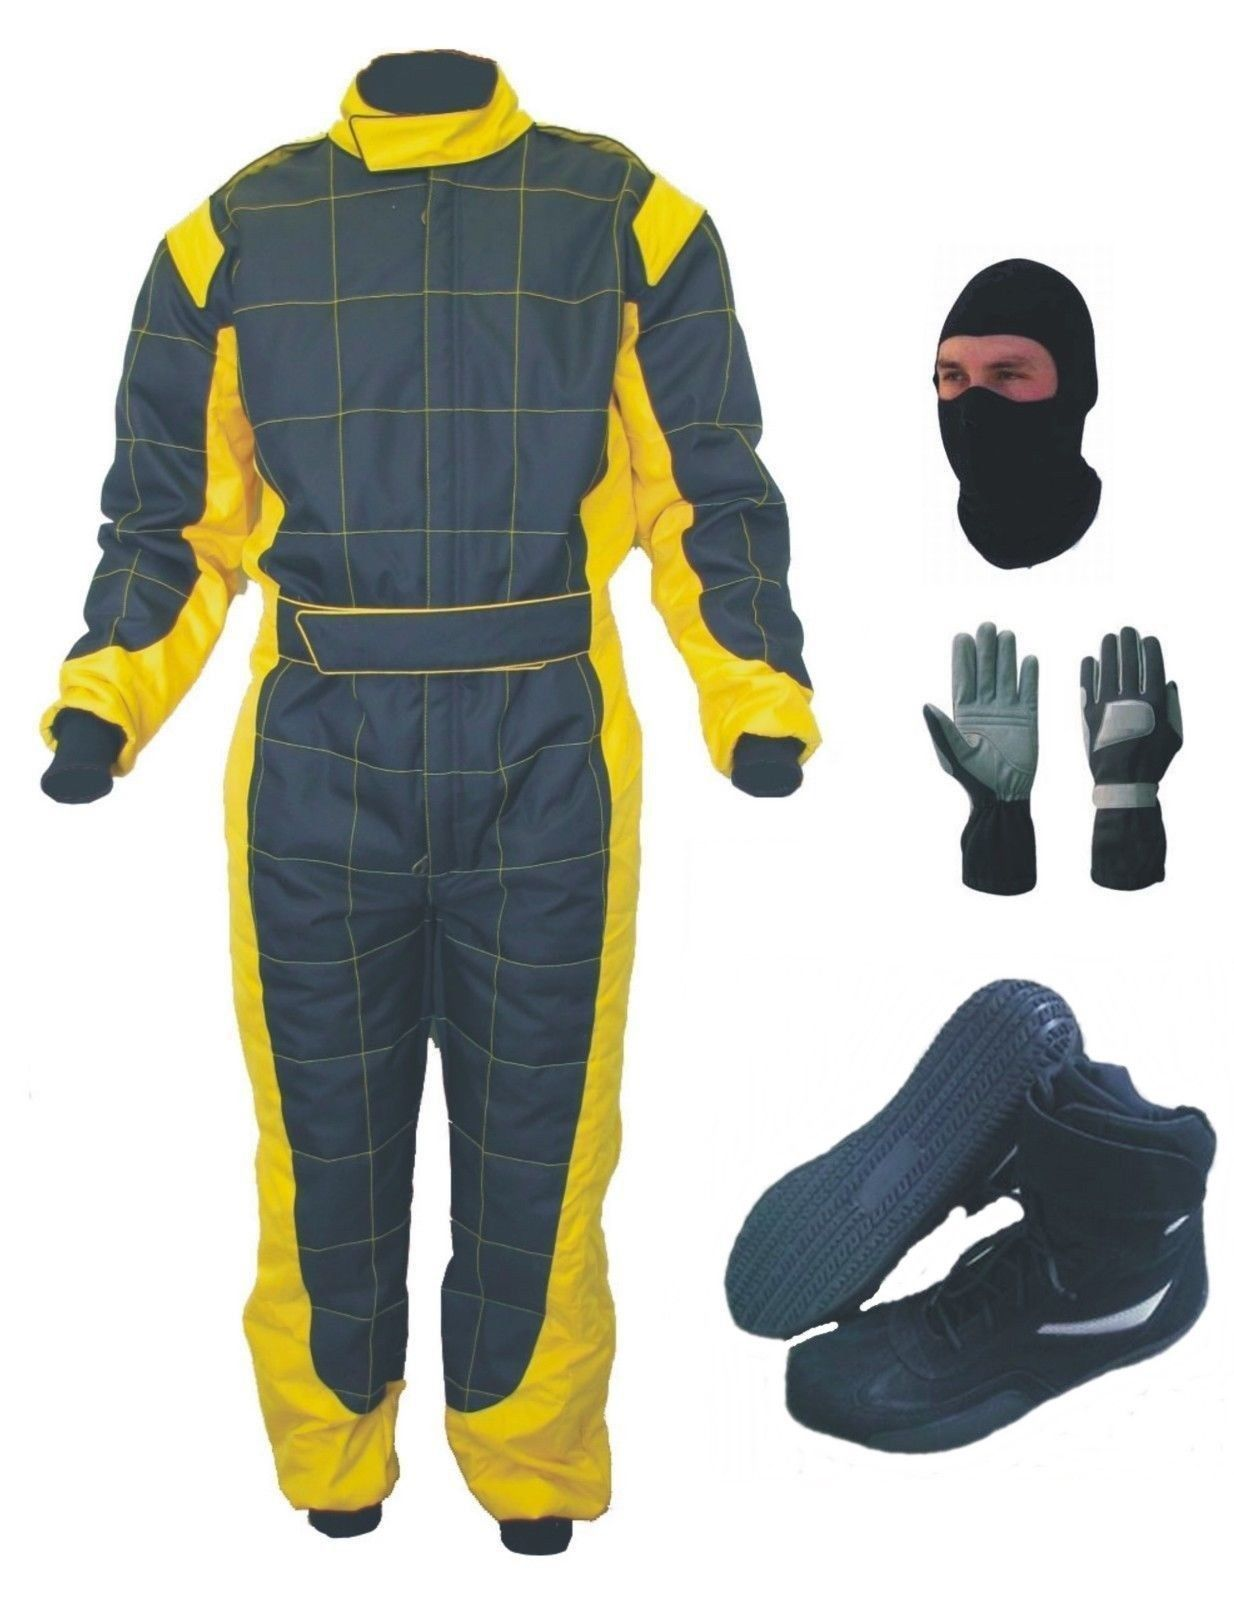 Latest Design Go Kart Race Suit Pack With Shoes And Gloves (Free gifts included)